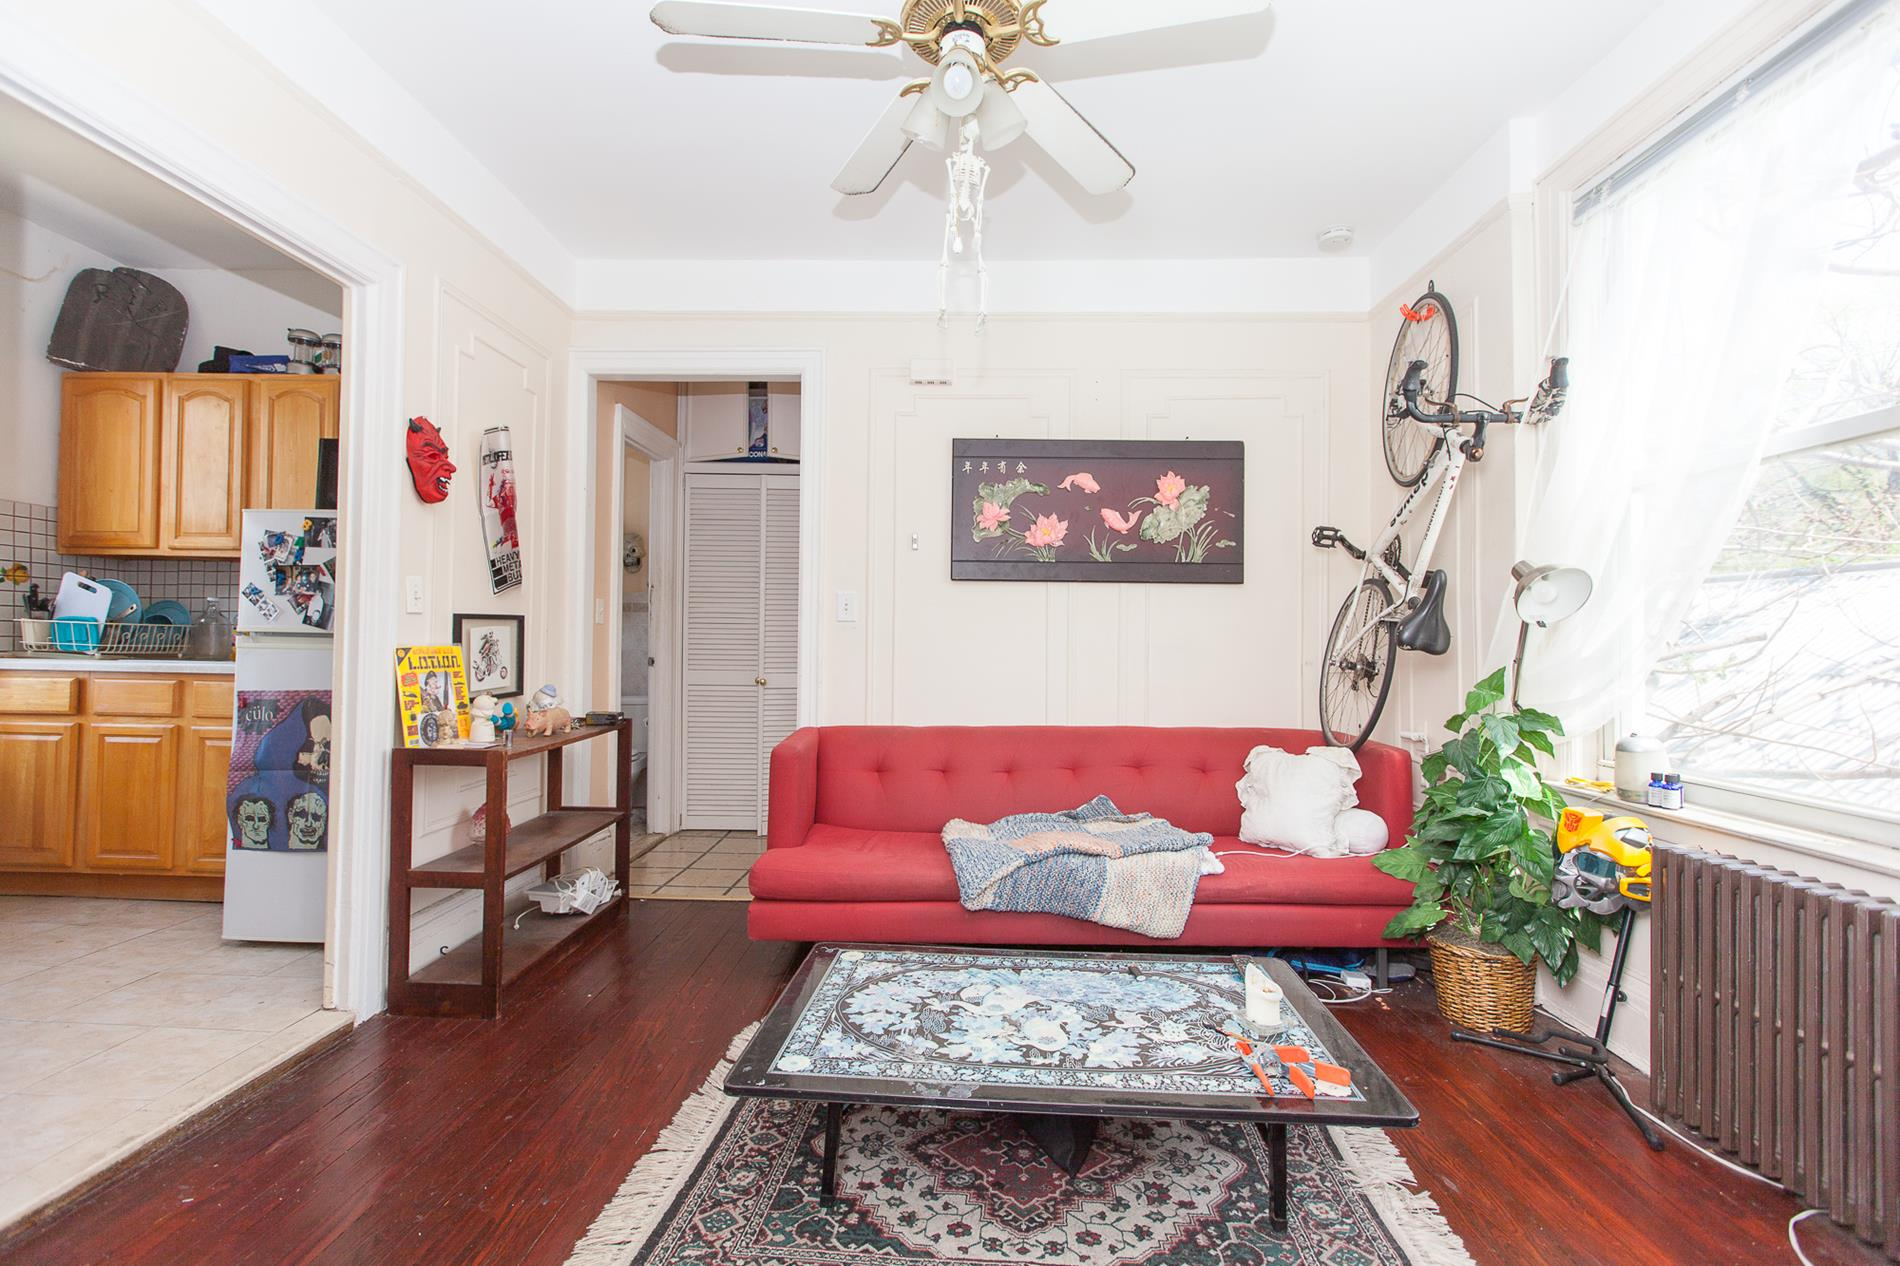 35-12 Bradley Avenue, Apt 2-R, Queens, New York 11101